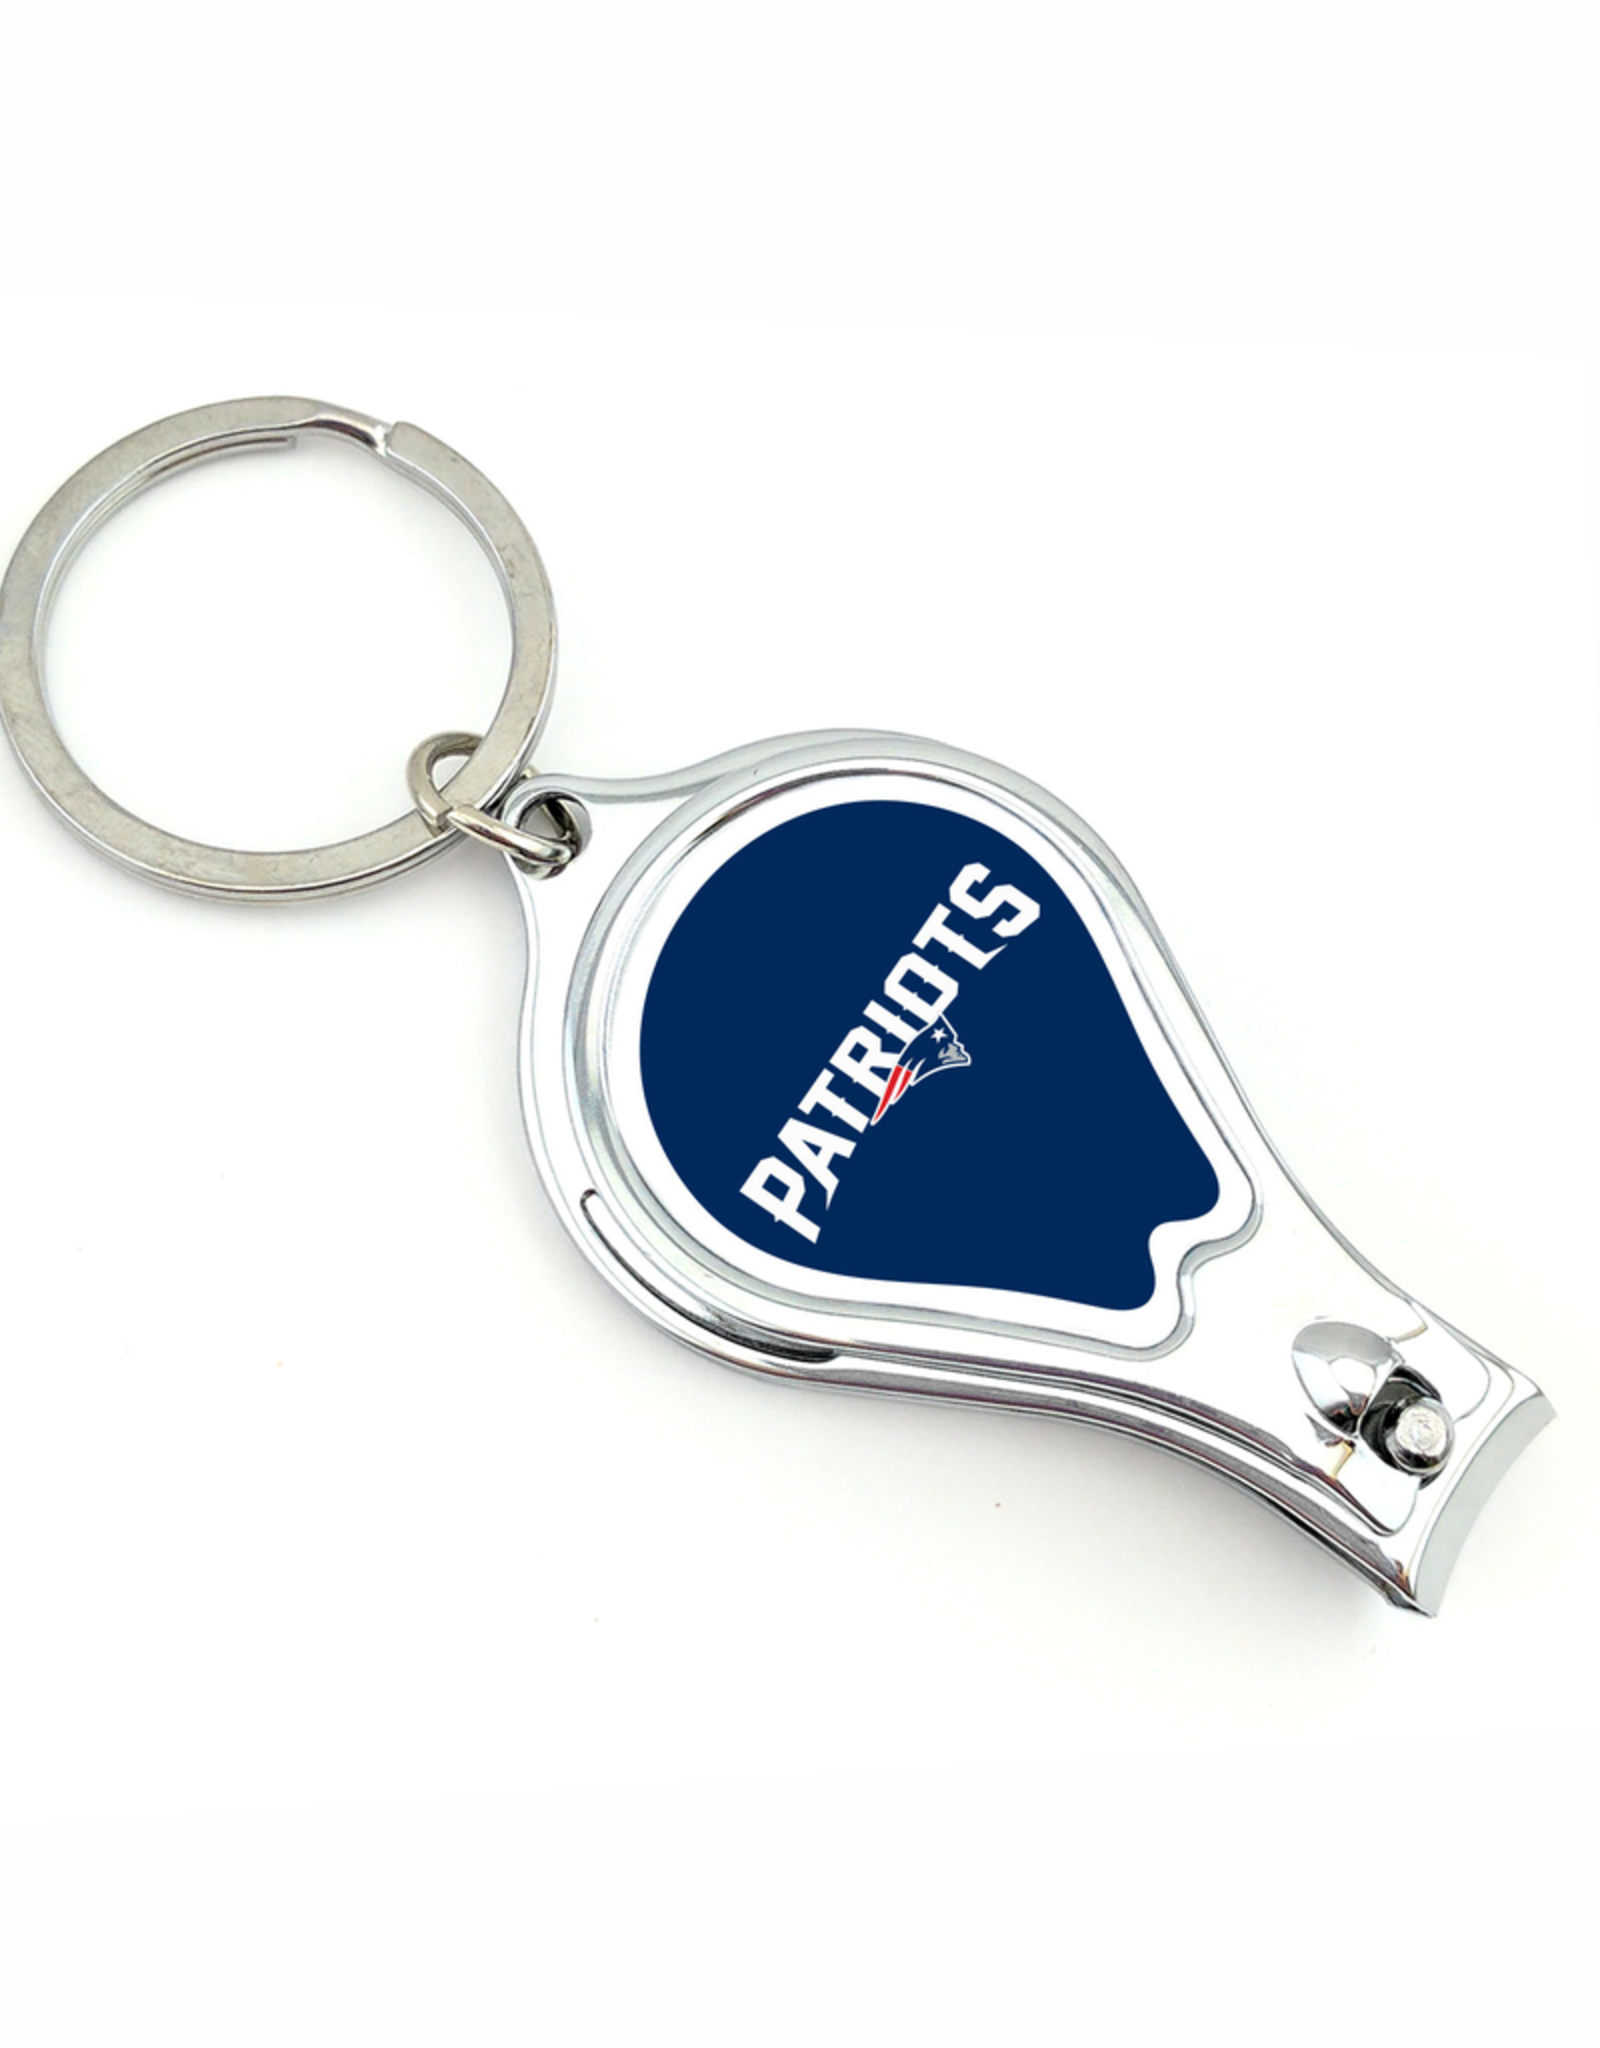 WORTHY PROMOTIONAL PRODUCTS New England Patriots Multi Function 3-in-1 Keyring